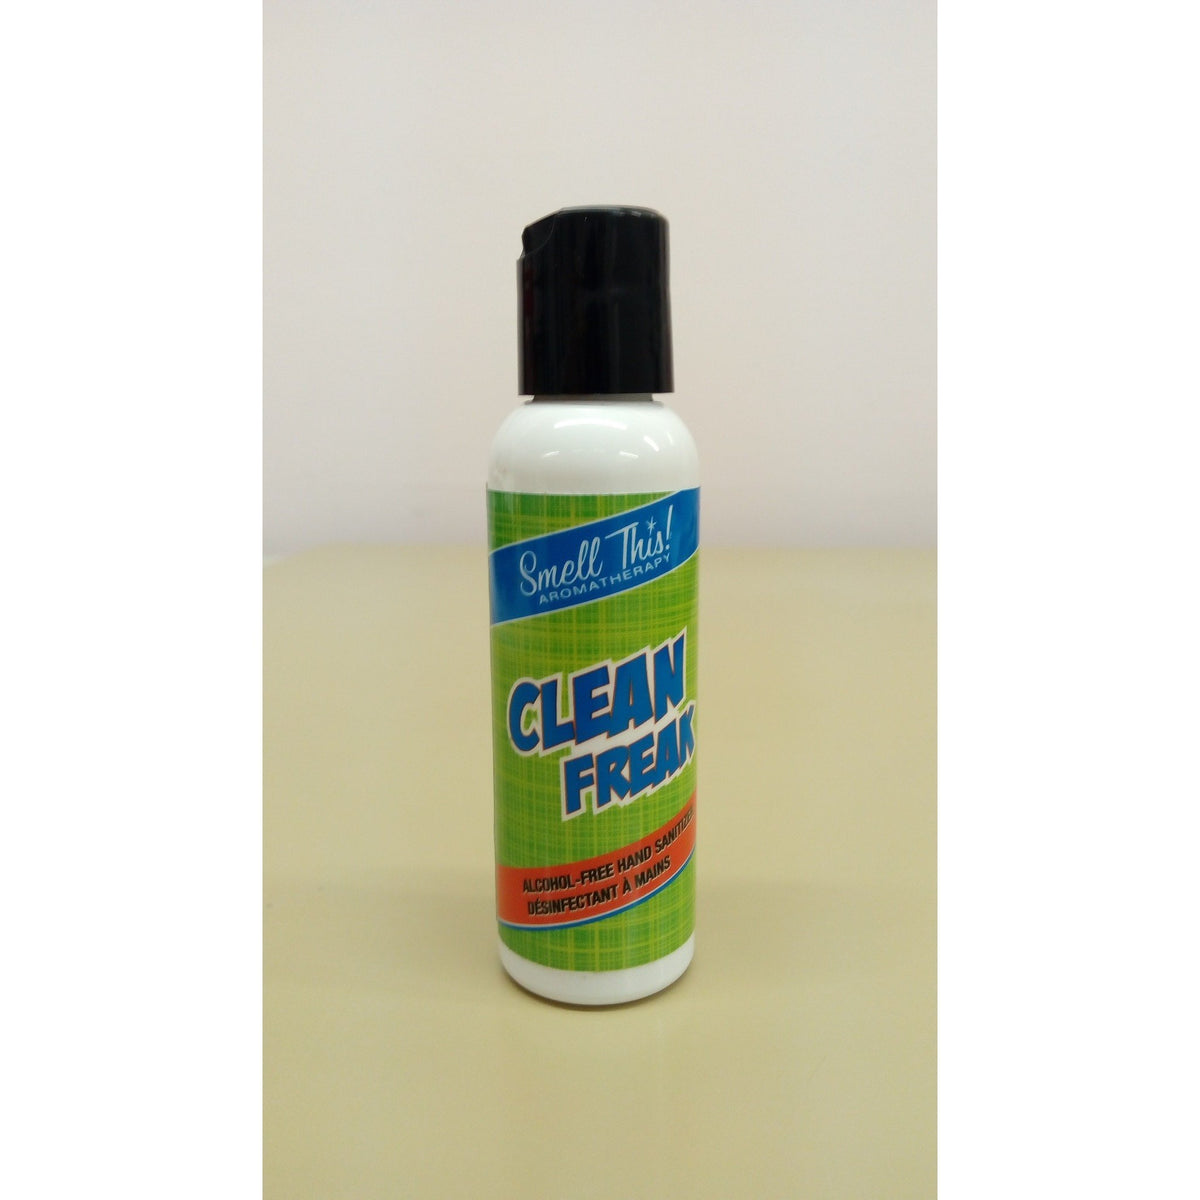 Smell This - Clean Freak Hand Sanitizer - Breizh Esthetic & Salon Supply